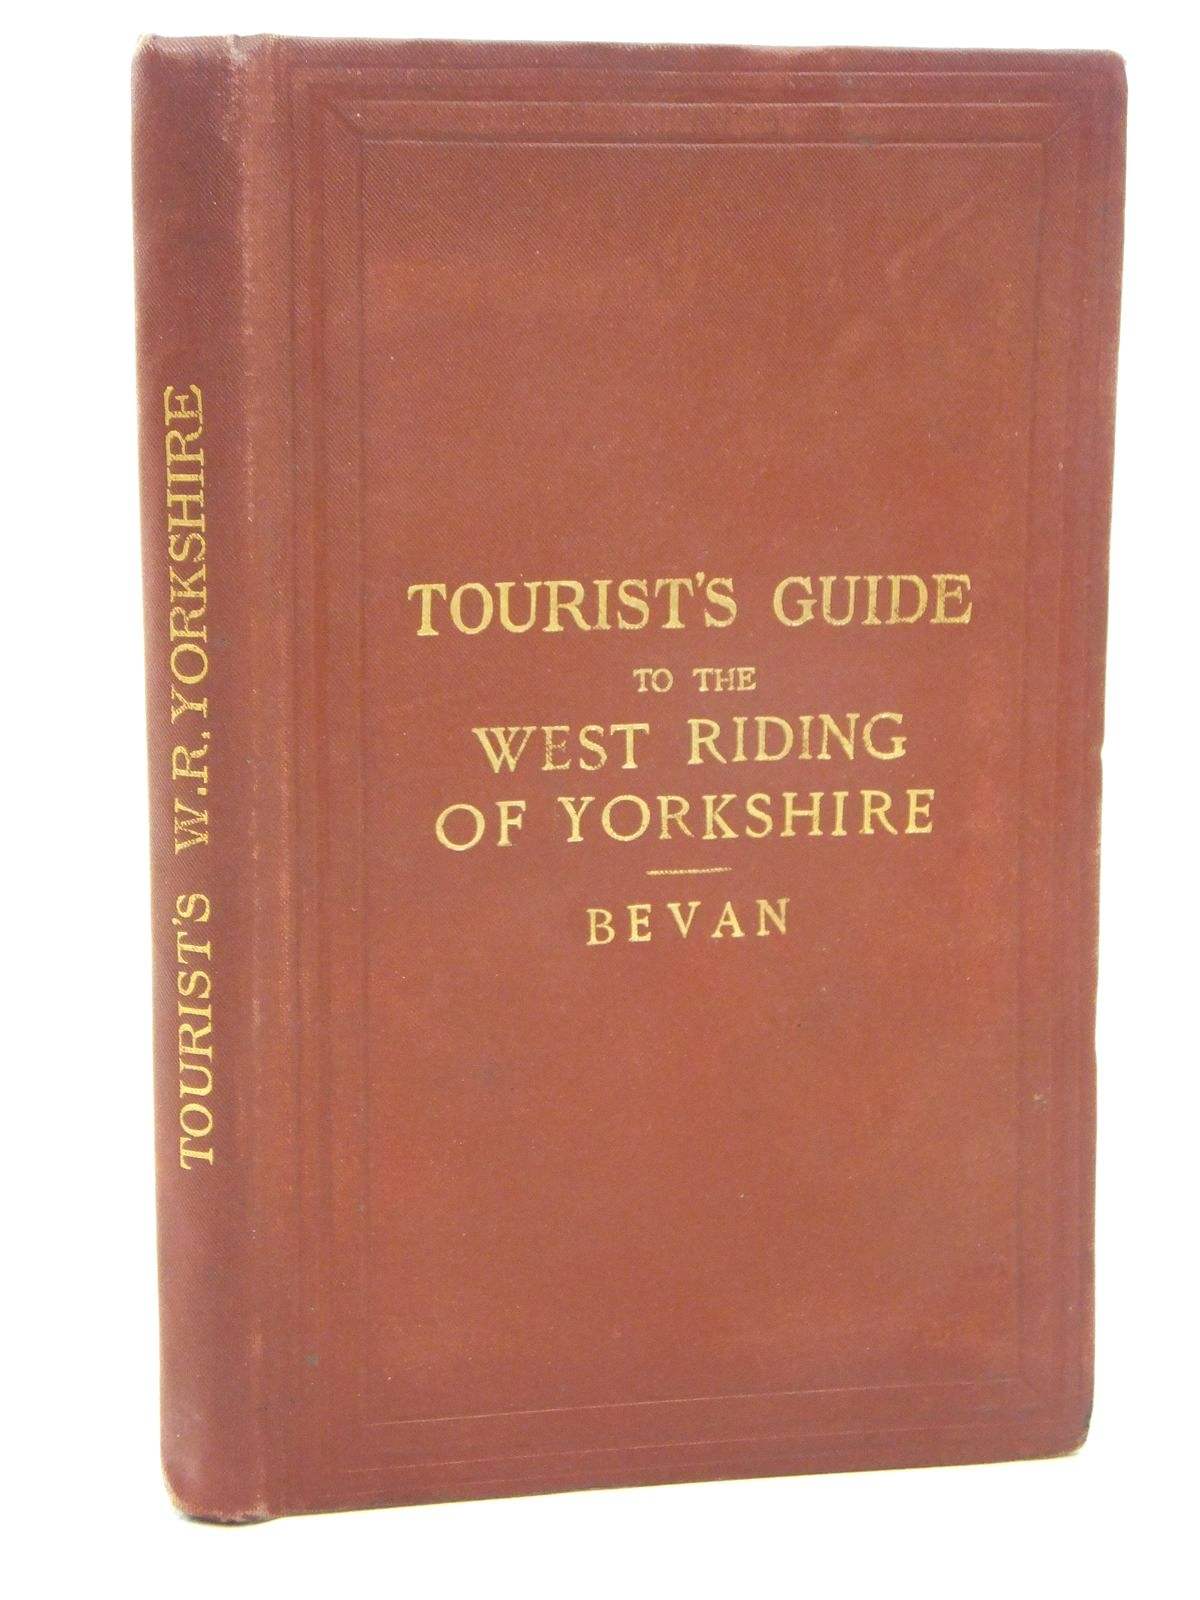 Photo of TOURIST'S GUIDE TO THE WEST RIDING OF YORKSHIRE written by Bevan, G. Phillips published by Edward Stanford (STOCK CODE: 1609476)  for sale by Stella & Rose's Books